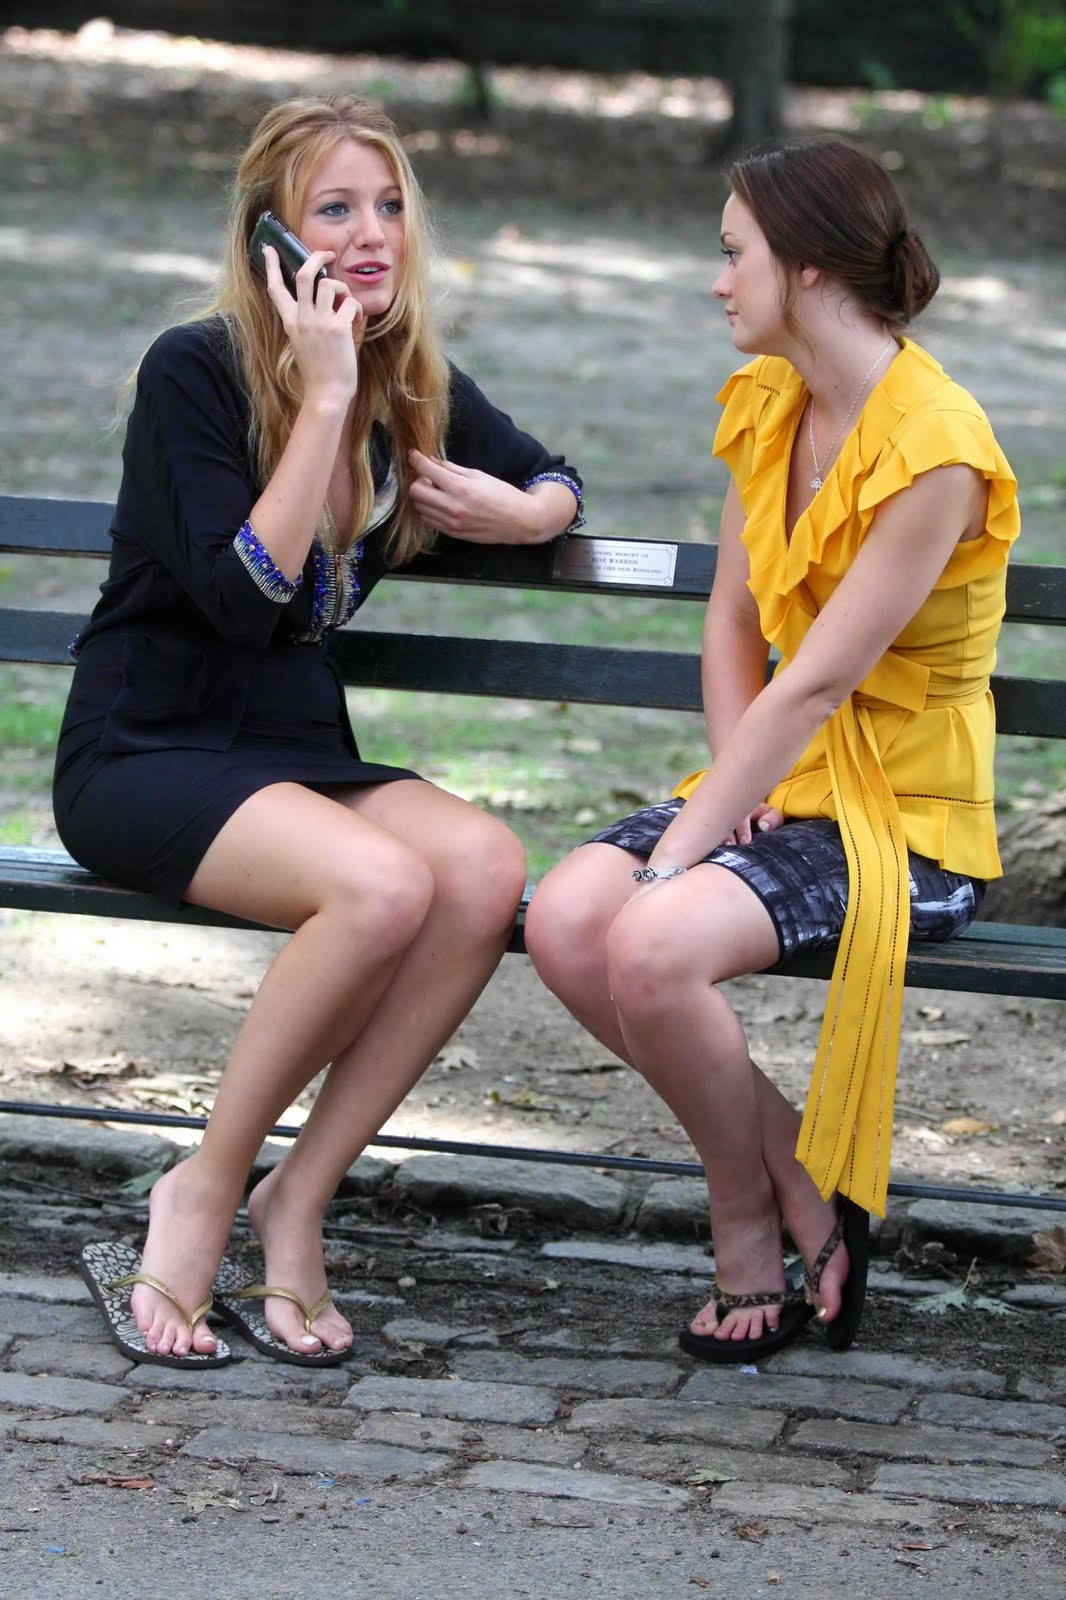 Mole, Has self esteem issues with being tall for some reason.: http://hotcelebrityfeet.wordpress.com/category/blake-lively/